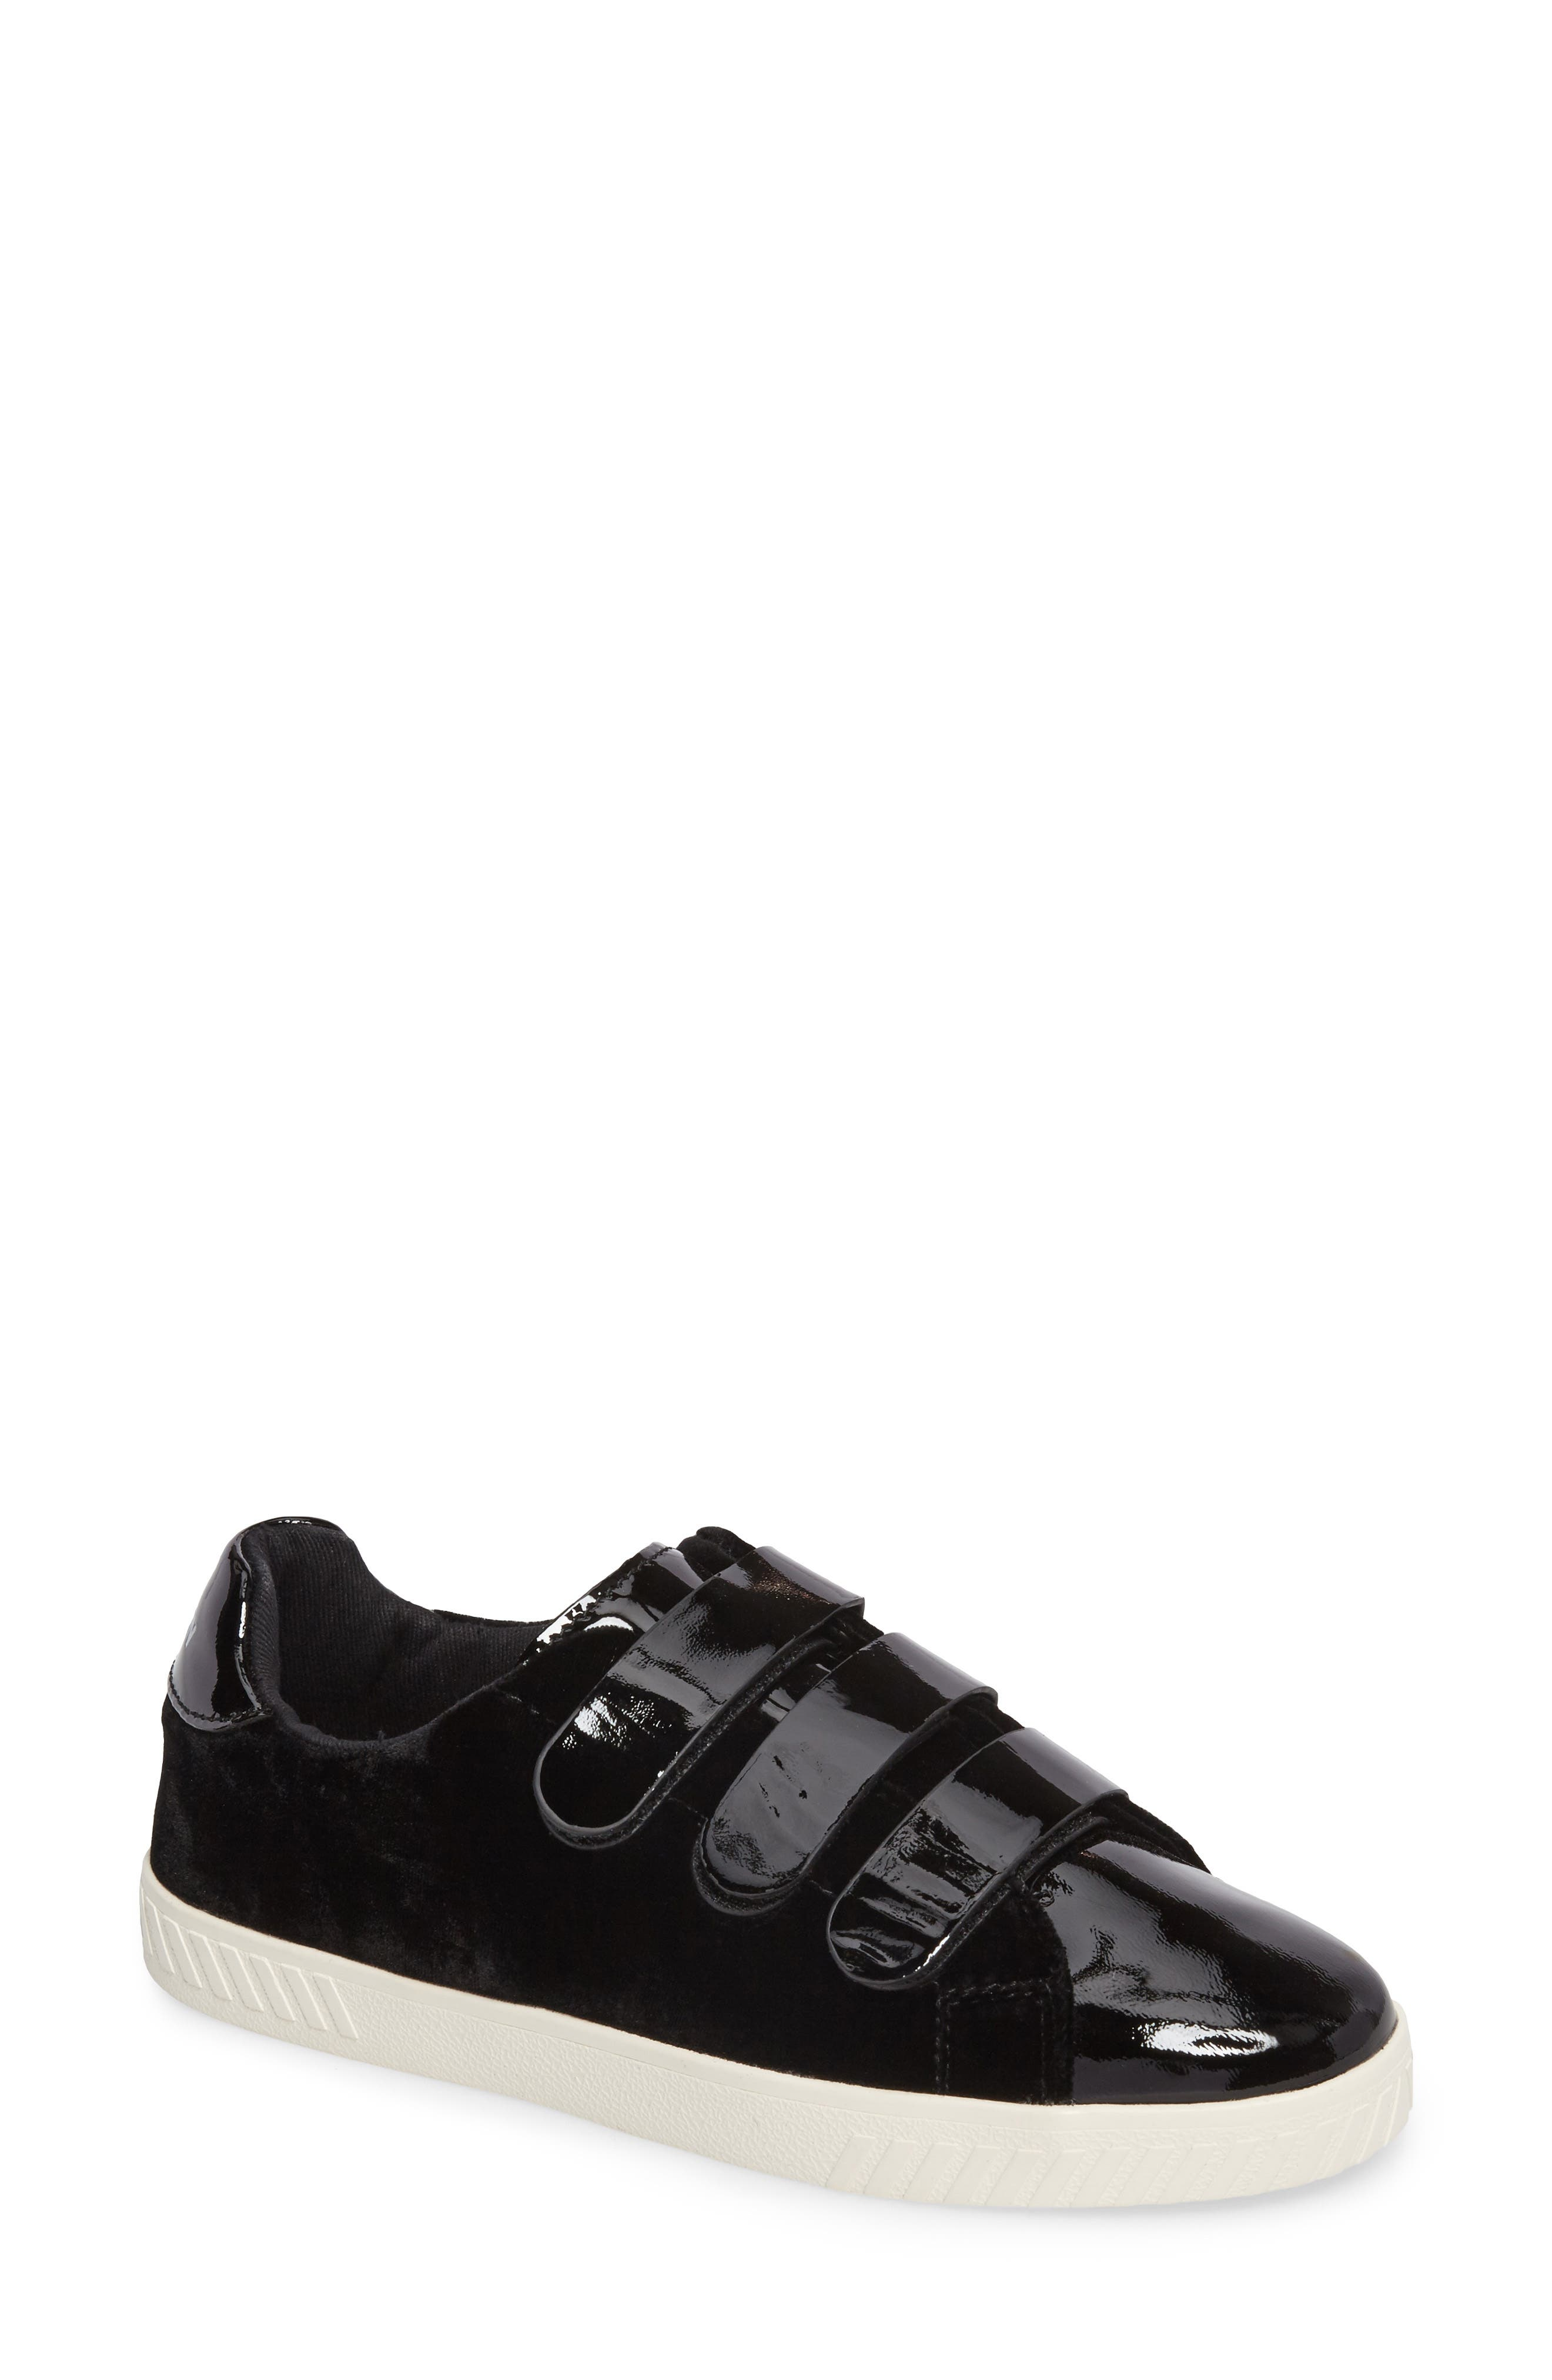 Carry Sneaker,                         Main,                         color, Black/ Nero